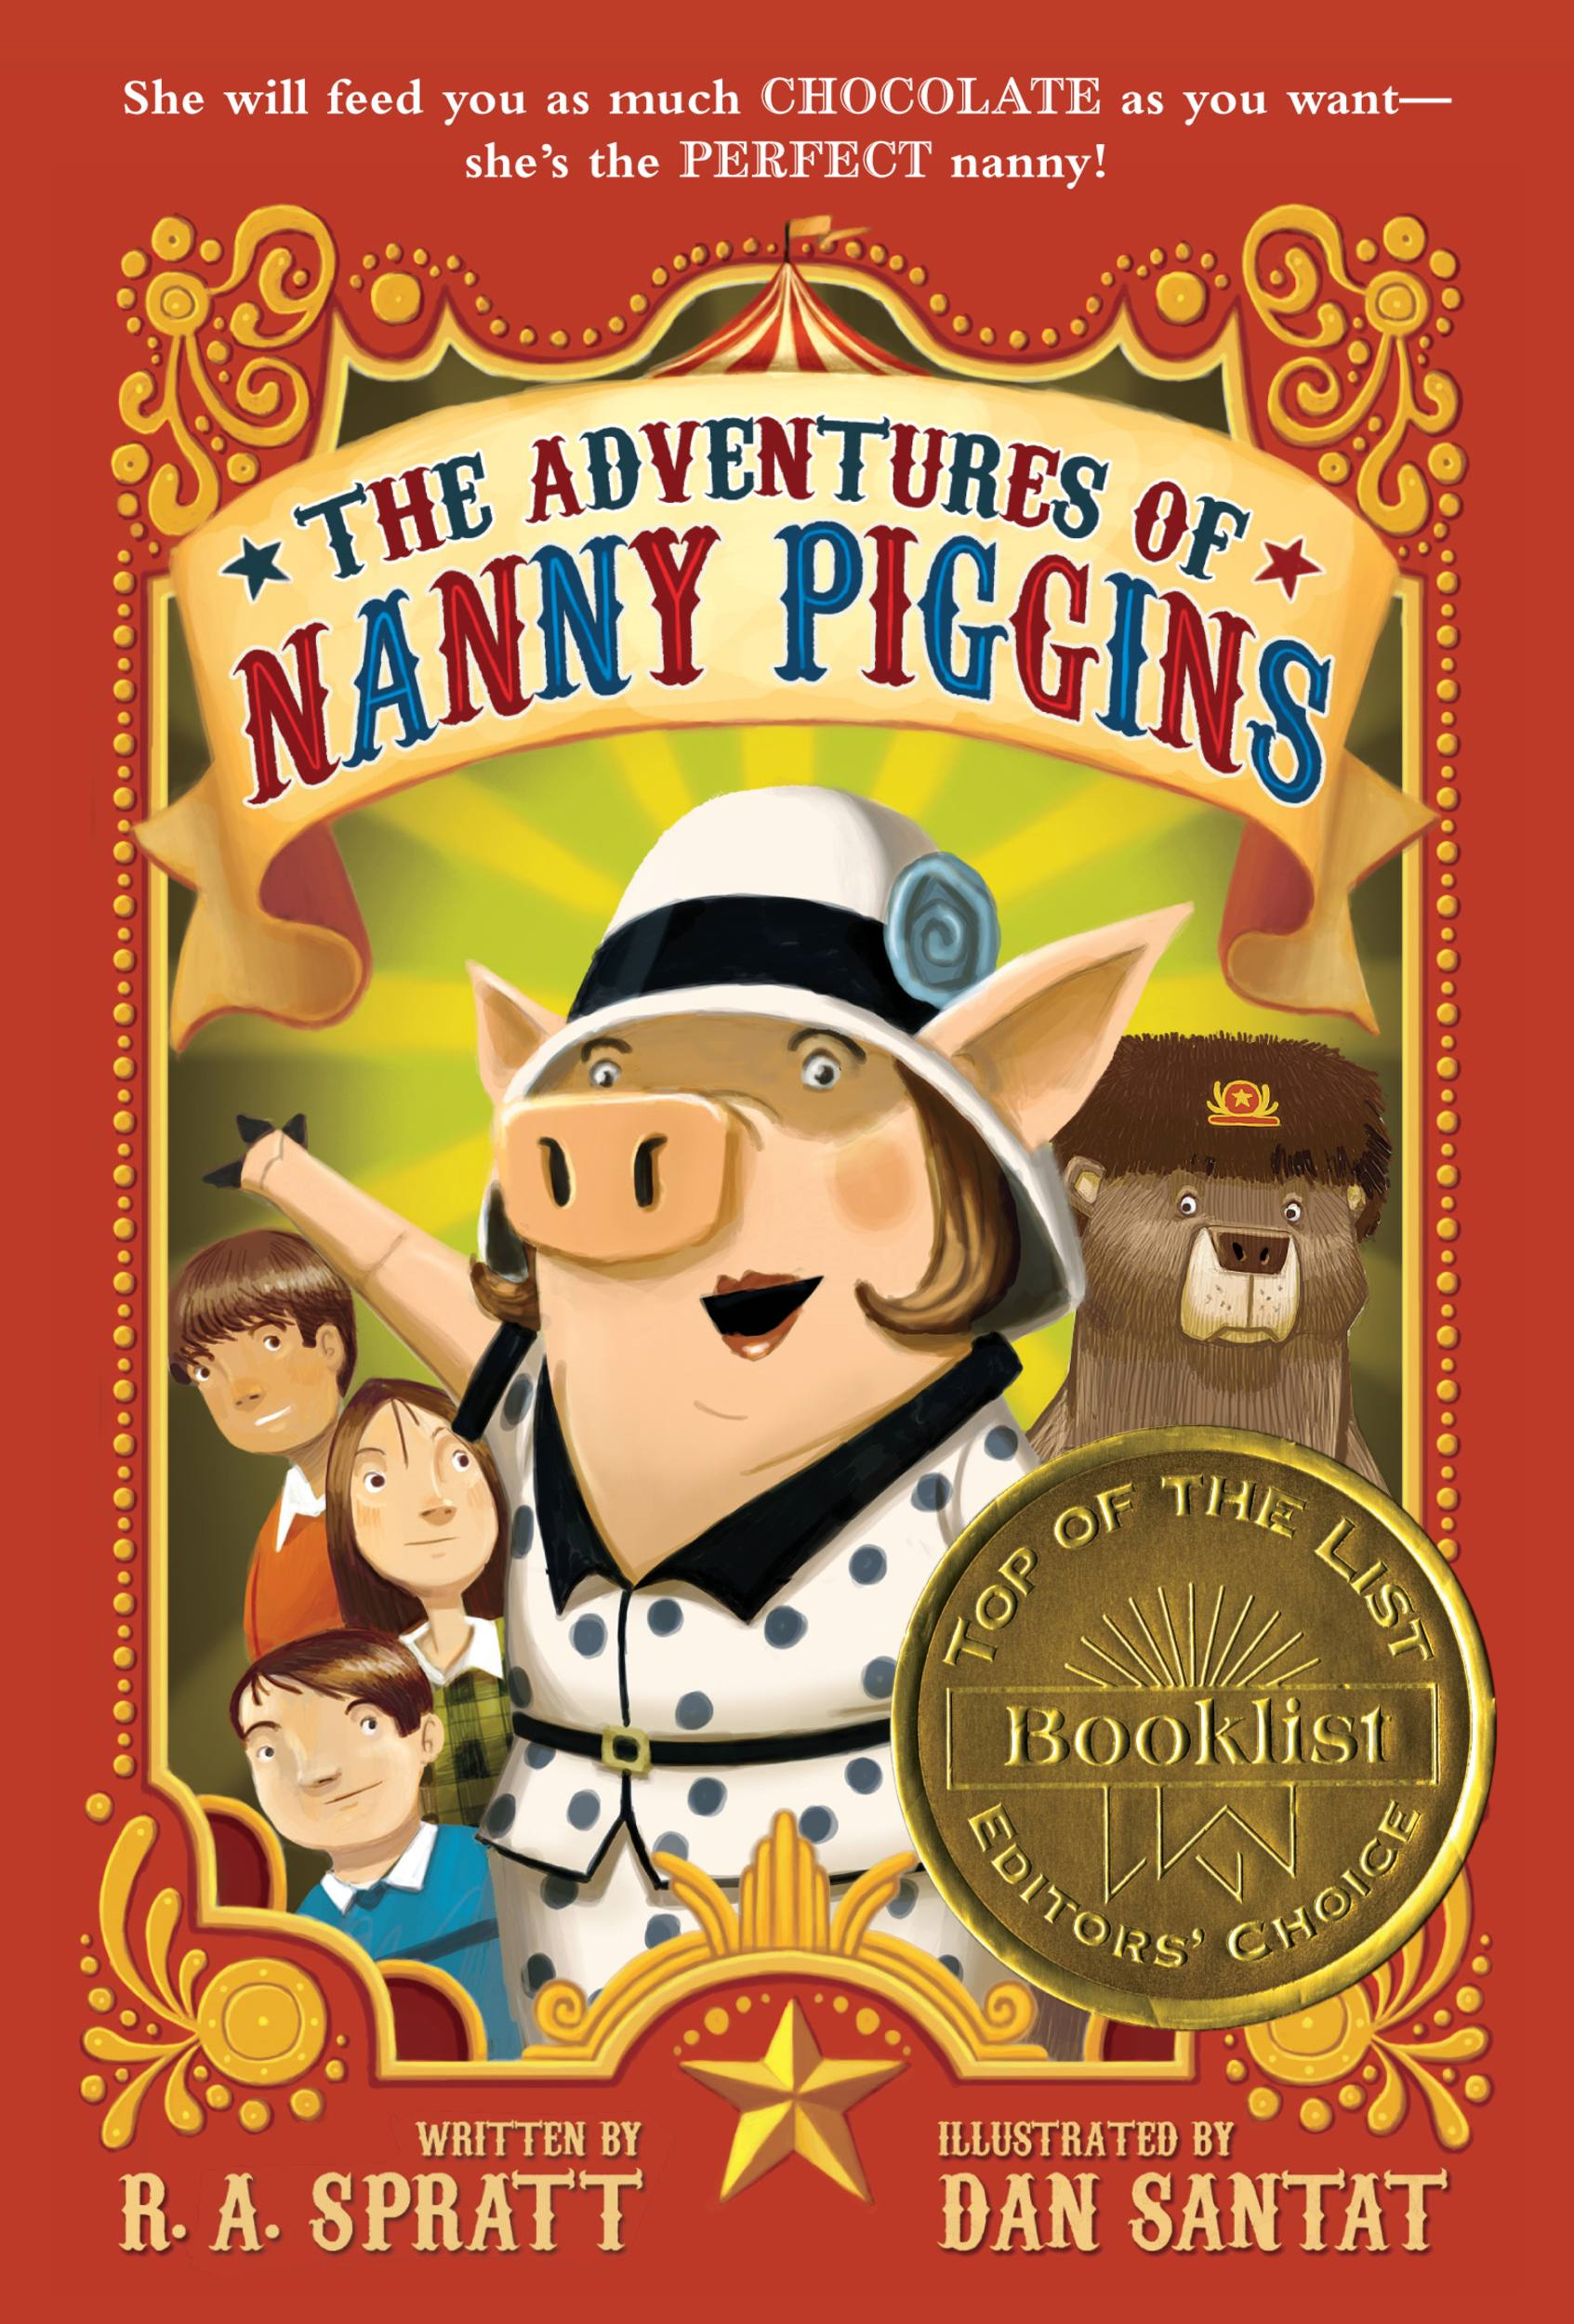 The Adventures of Nanny Piggins By: R. A. Spratt,Dan Santat